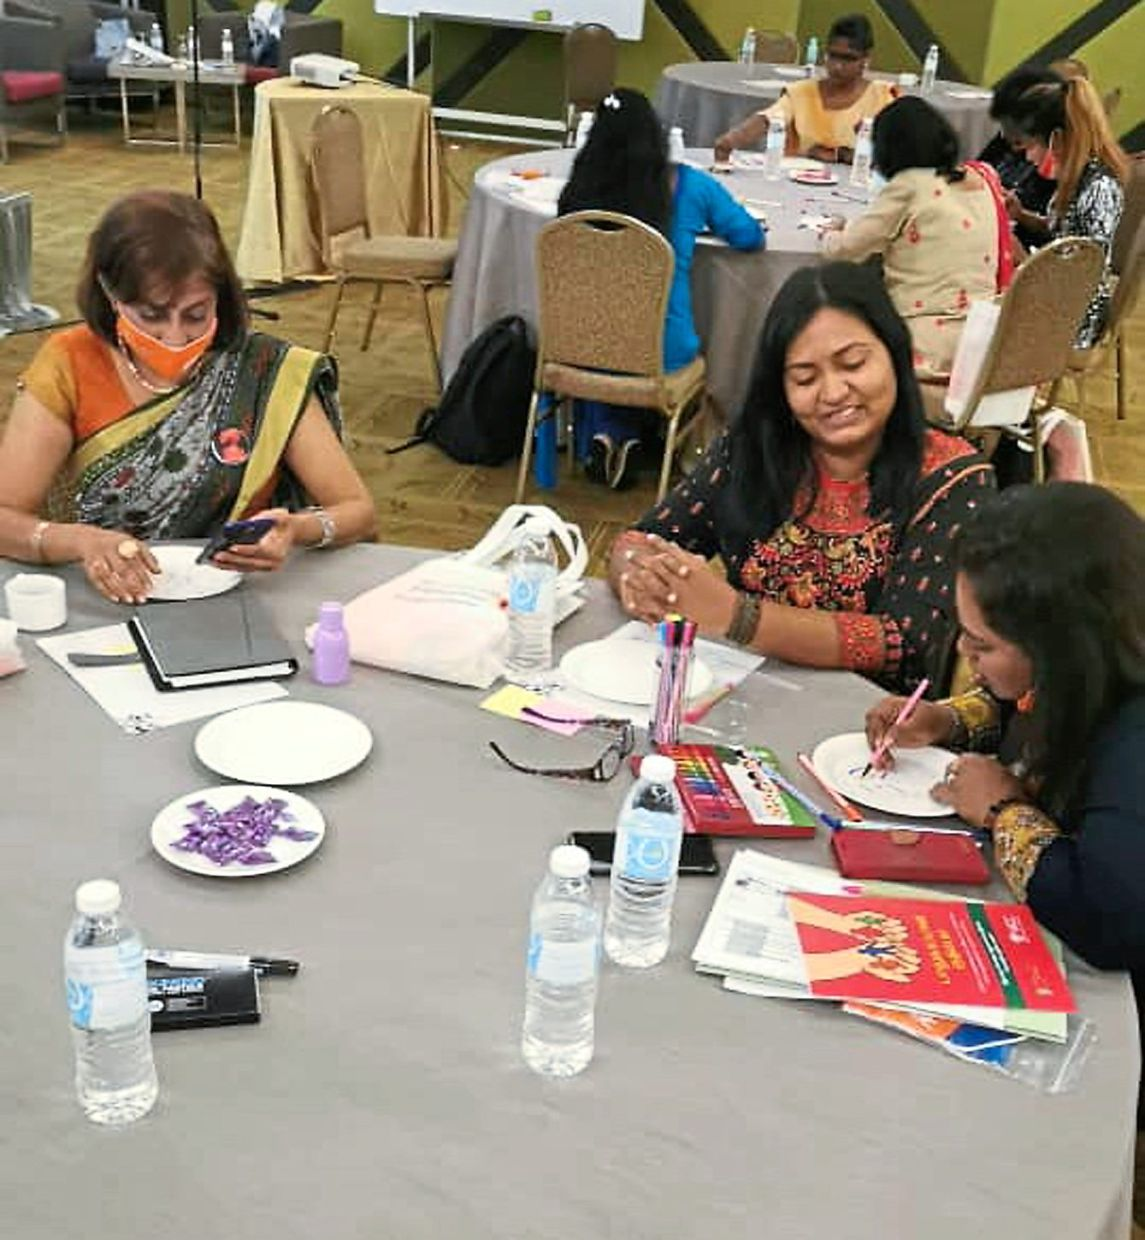 Workshop participants undergoing training to aid domestic violence victims.